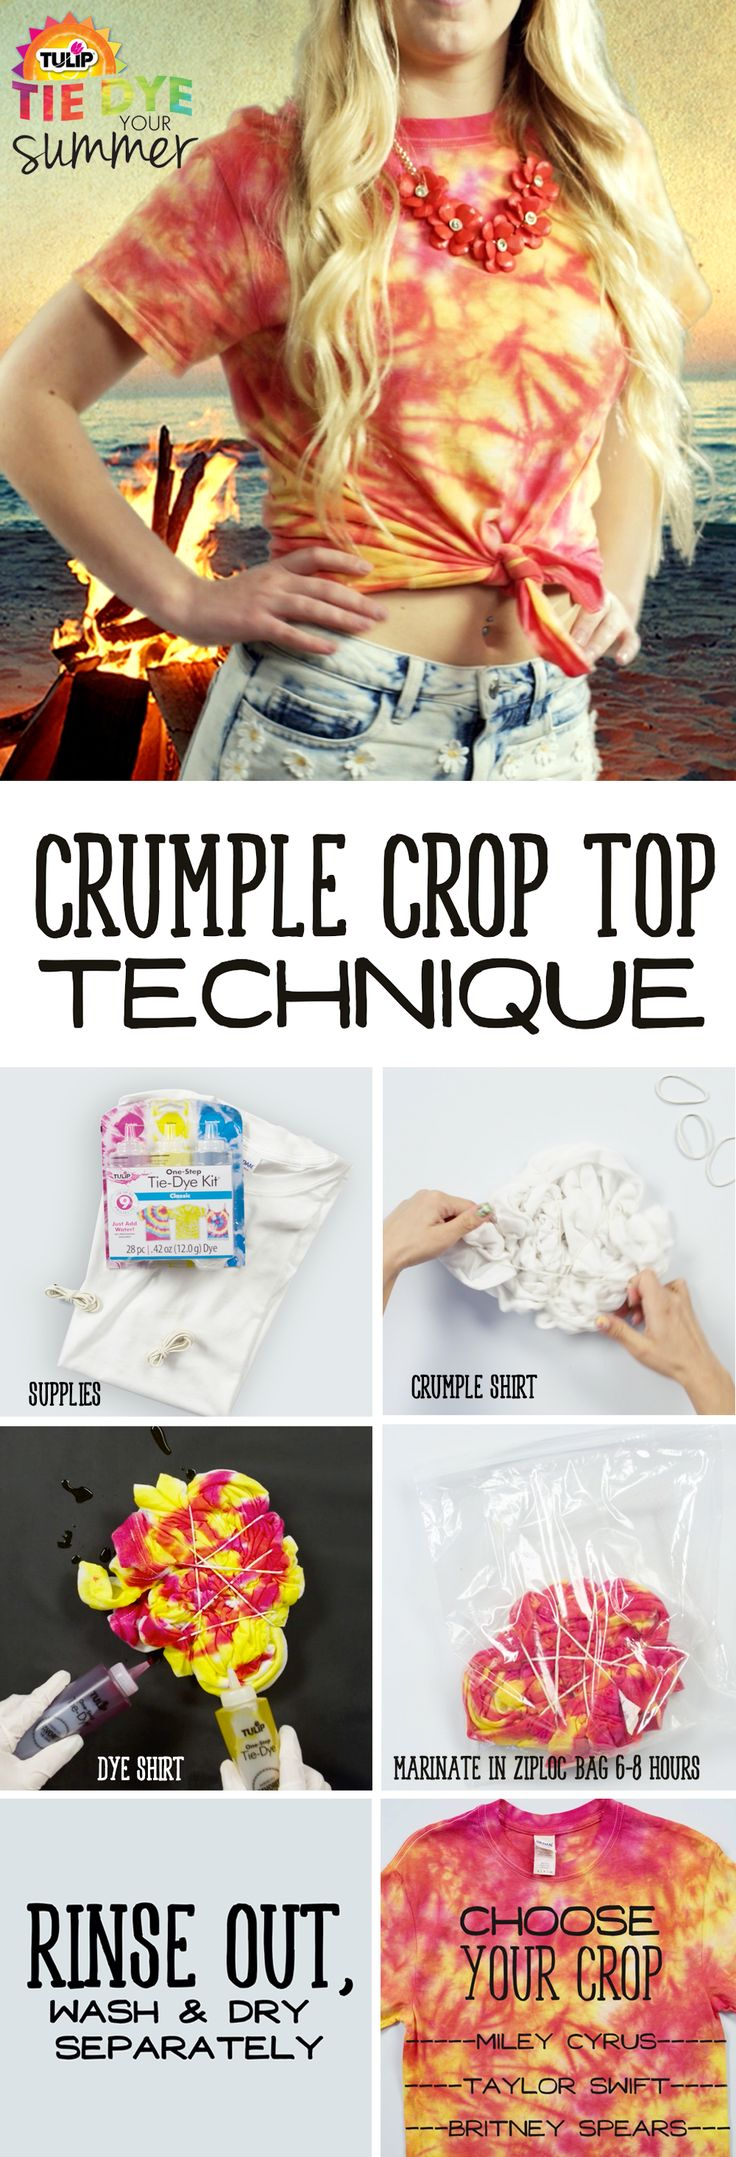 Make this DIY cropped tee using Tulip One-Step Tie-Dye!  Such a cute look for a festival or night out! #tiedyeyoursummer  (LINK HERE: tiedyeyoursummer.com/white-to-wow.html